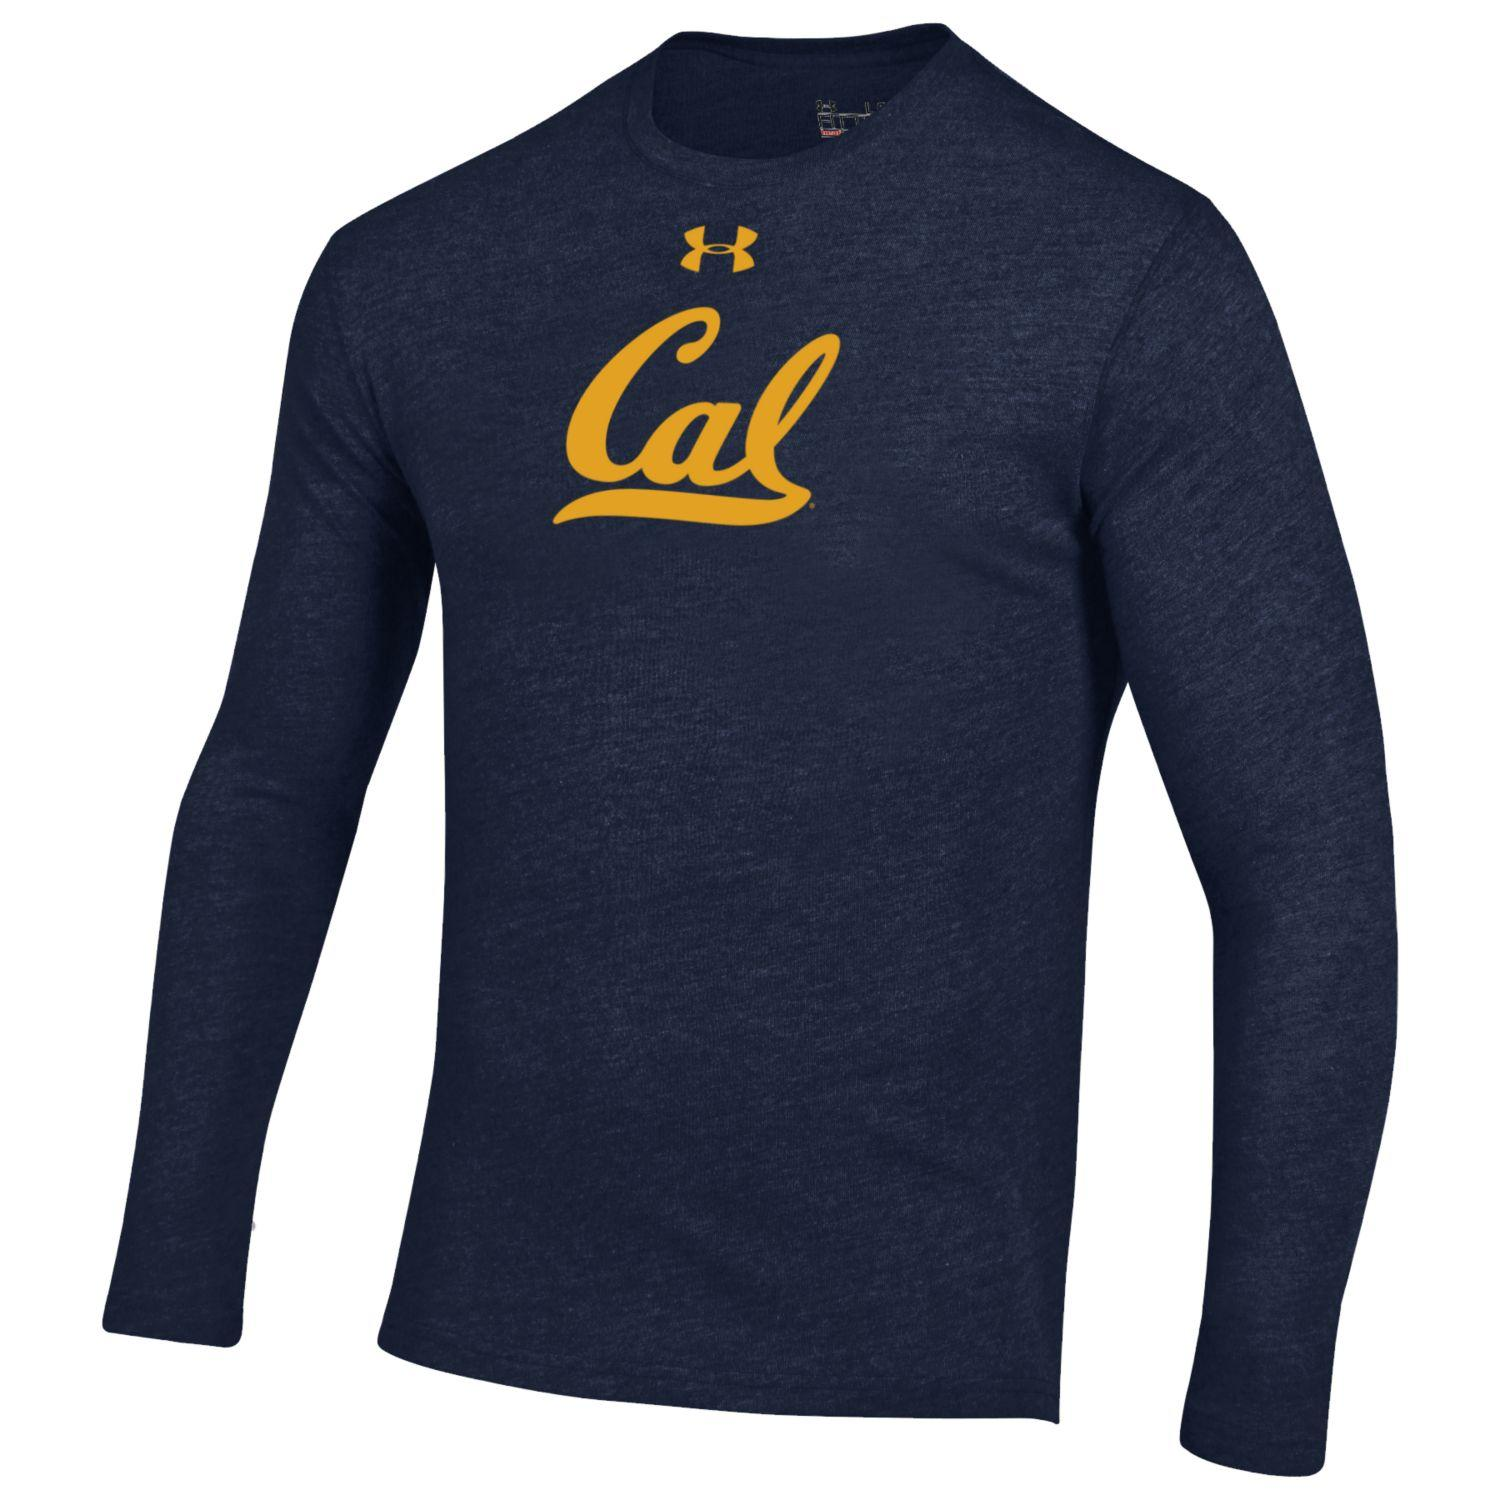 Men's LS Triblend Tee Under Armour Cal Logo